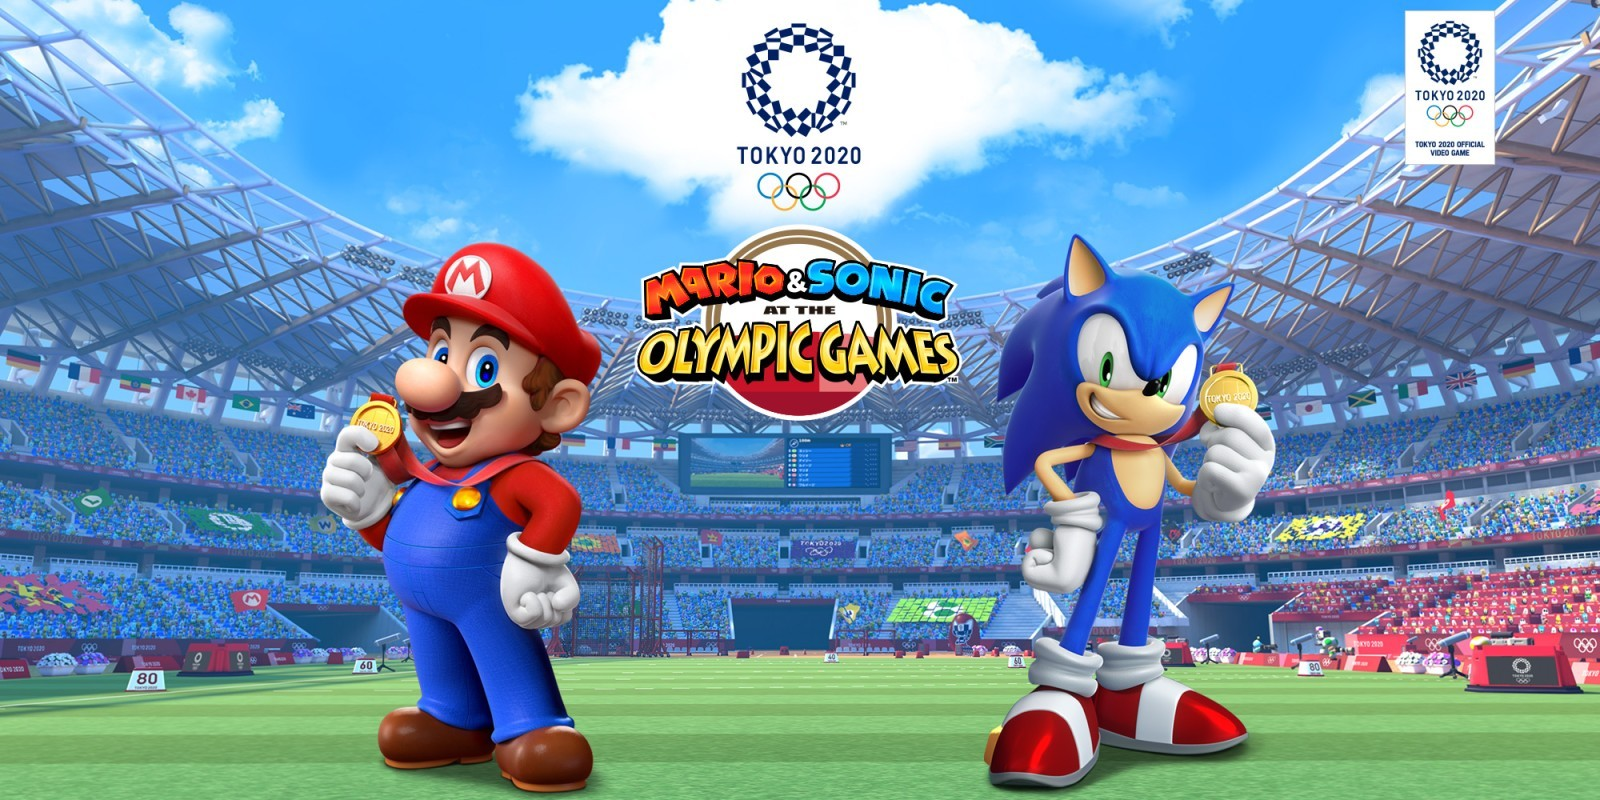 Mario & Sonic at the Olympic Games Tokyo 2020 will have hoverboard racing